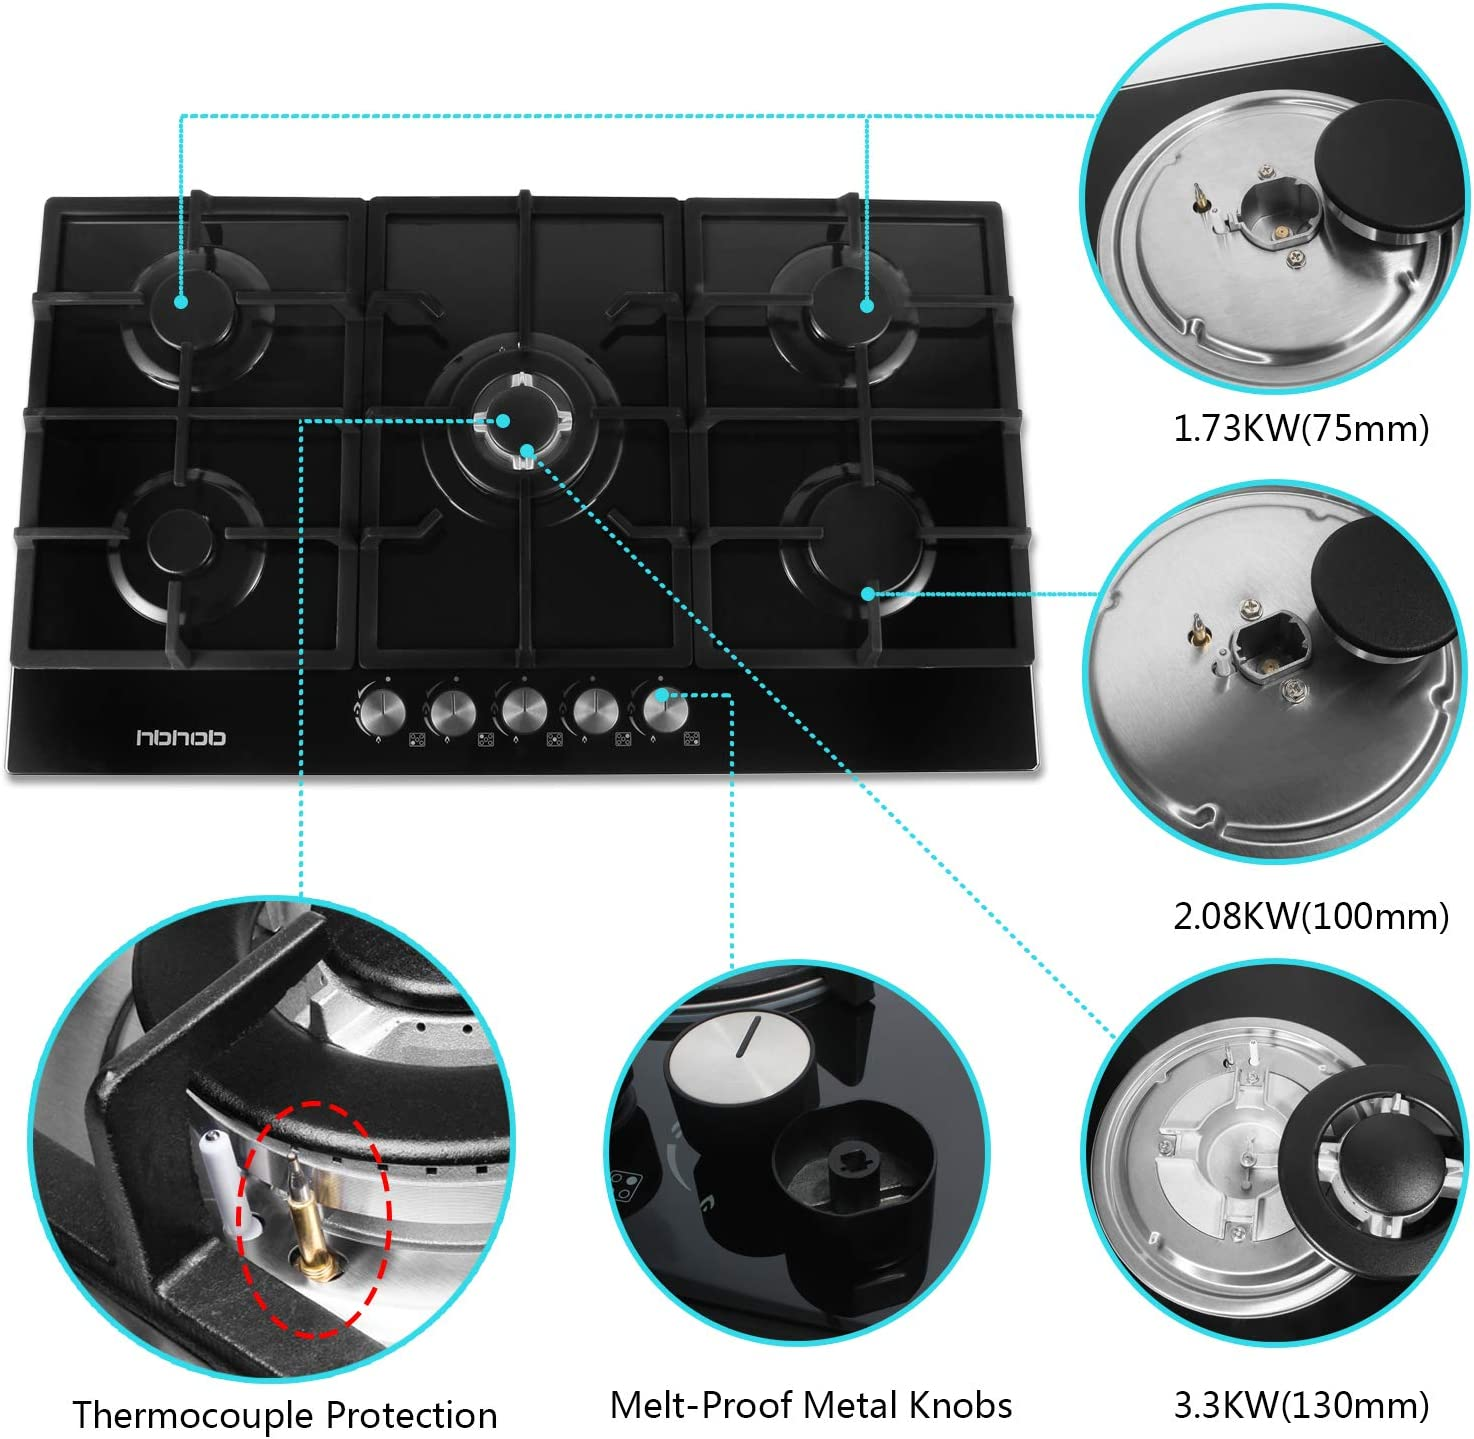 5 Sealed Burners Stove Burner Cast Iron Grate Stove-Top LPG//NG Dual Fuel Thermocouple Protection and Easy to Clea Gas Stove Gas Cooktop Tempered Glass Built in Gas Stove 5 Burners Gas Stoves Cooktop